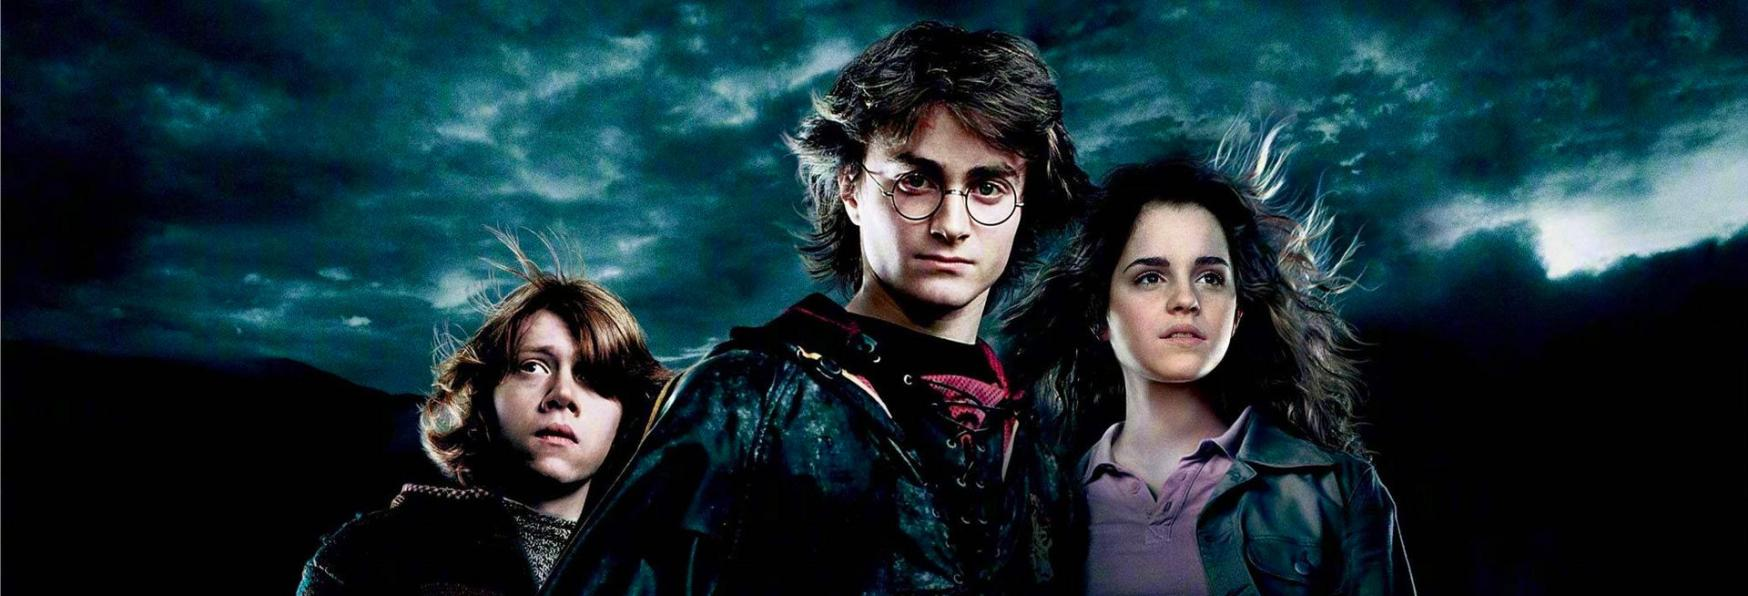 Harry Potter: in Fase di Lavorazione una Serie TV Live-Action per HBO Max